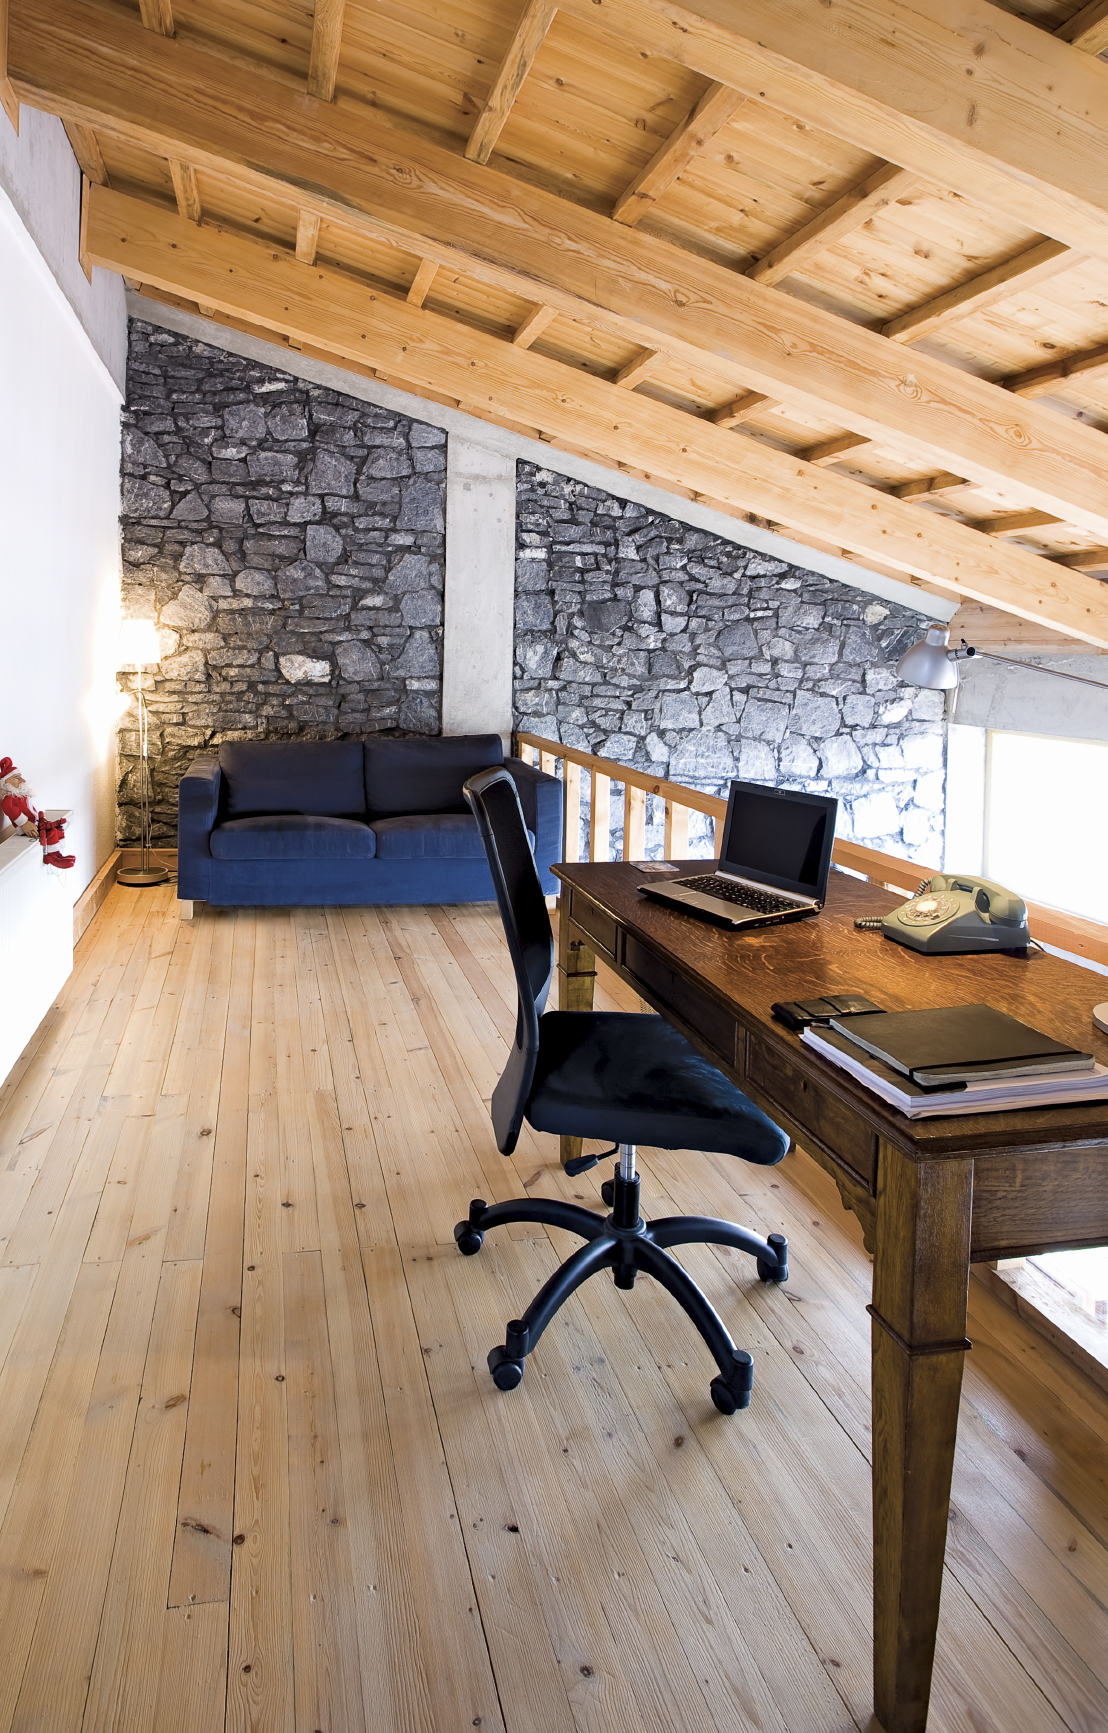 Occupying a natural wood loft in a rustic styled home, this office holds a traditional wood writing desk and bold blue sofa next to an immense stone wall.